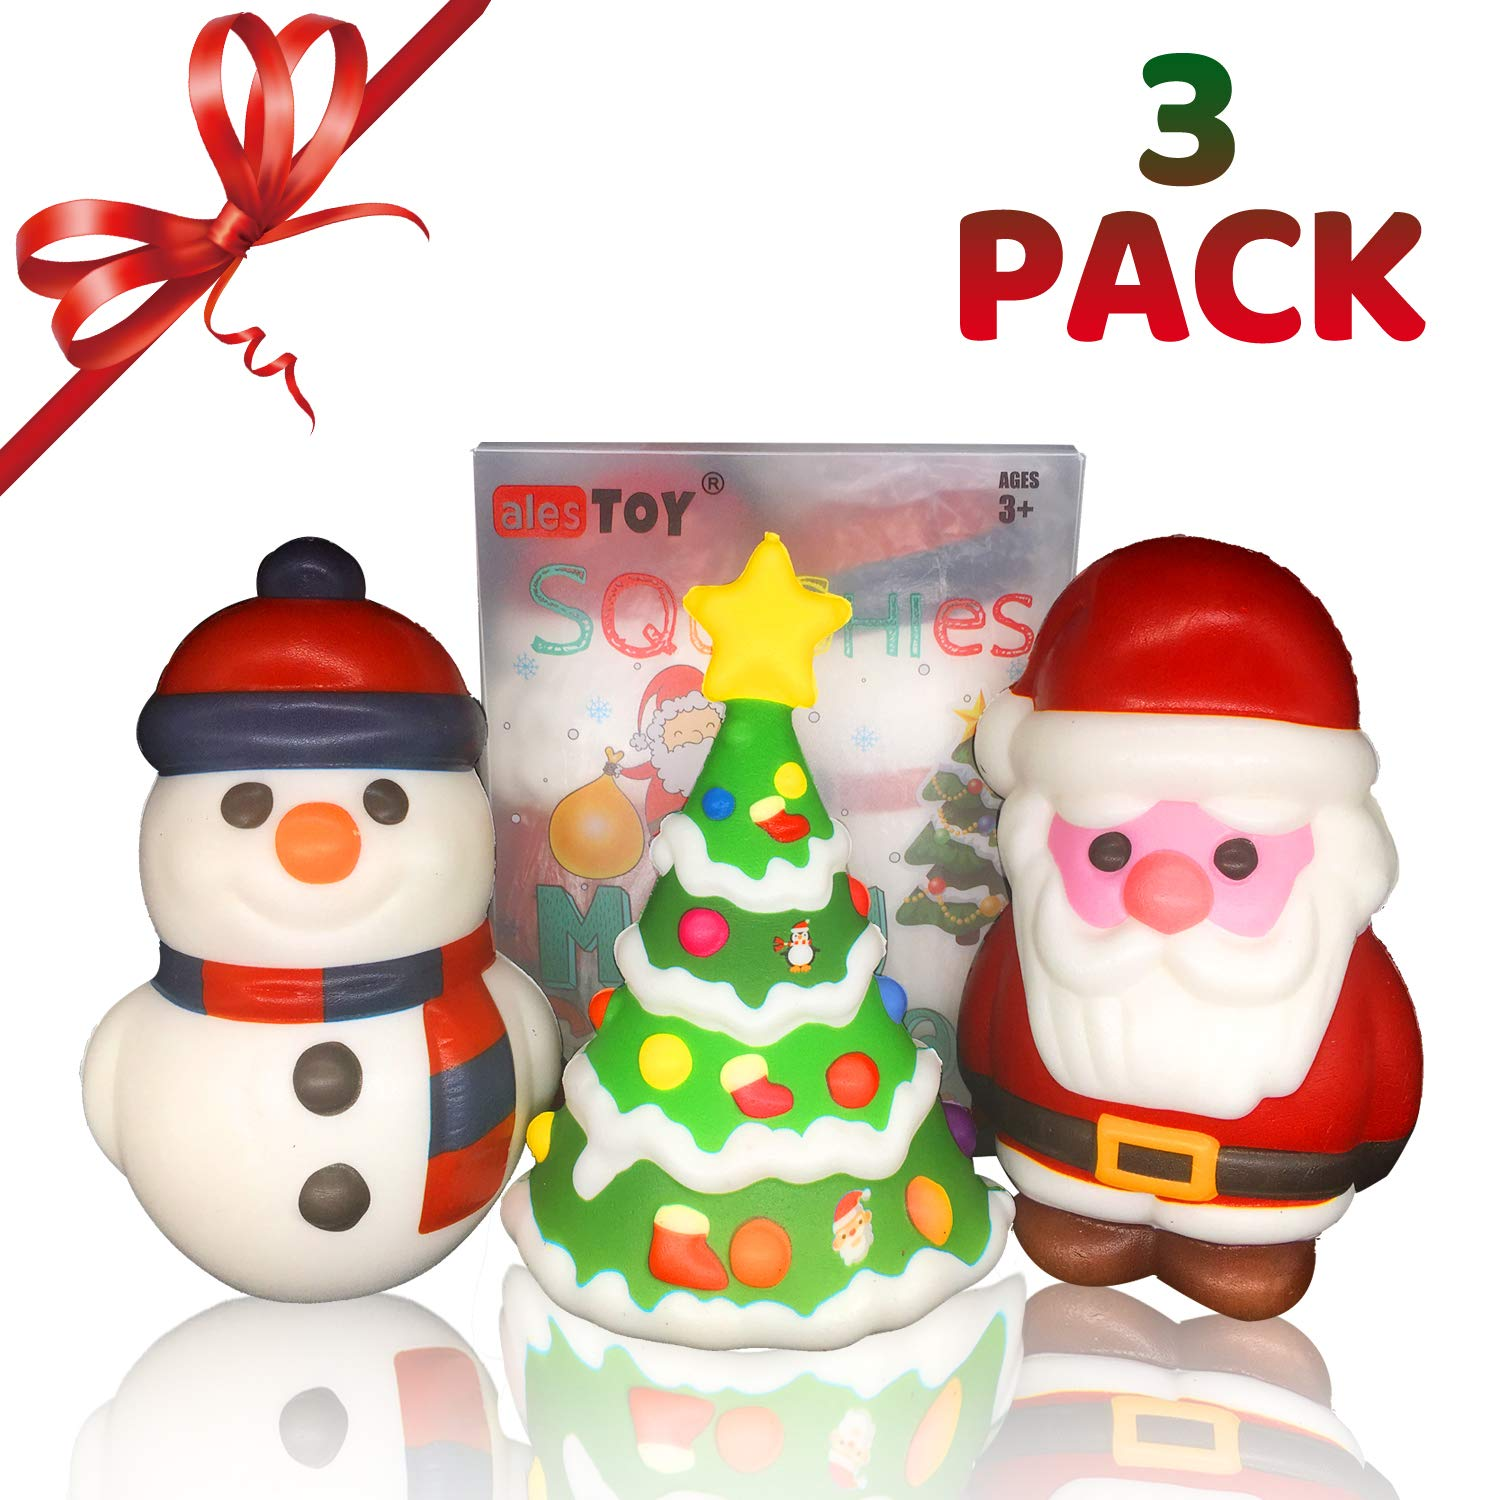 alesTOY Christmas Squishy Pack, Slow Rising Jumbo Santa & Friends Squishies - Kawaii Soft Squishies in A Gift Worthy Box (3-Pack) by alesTOY